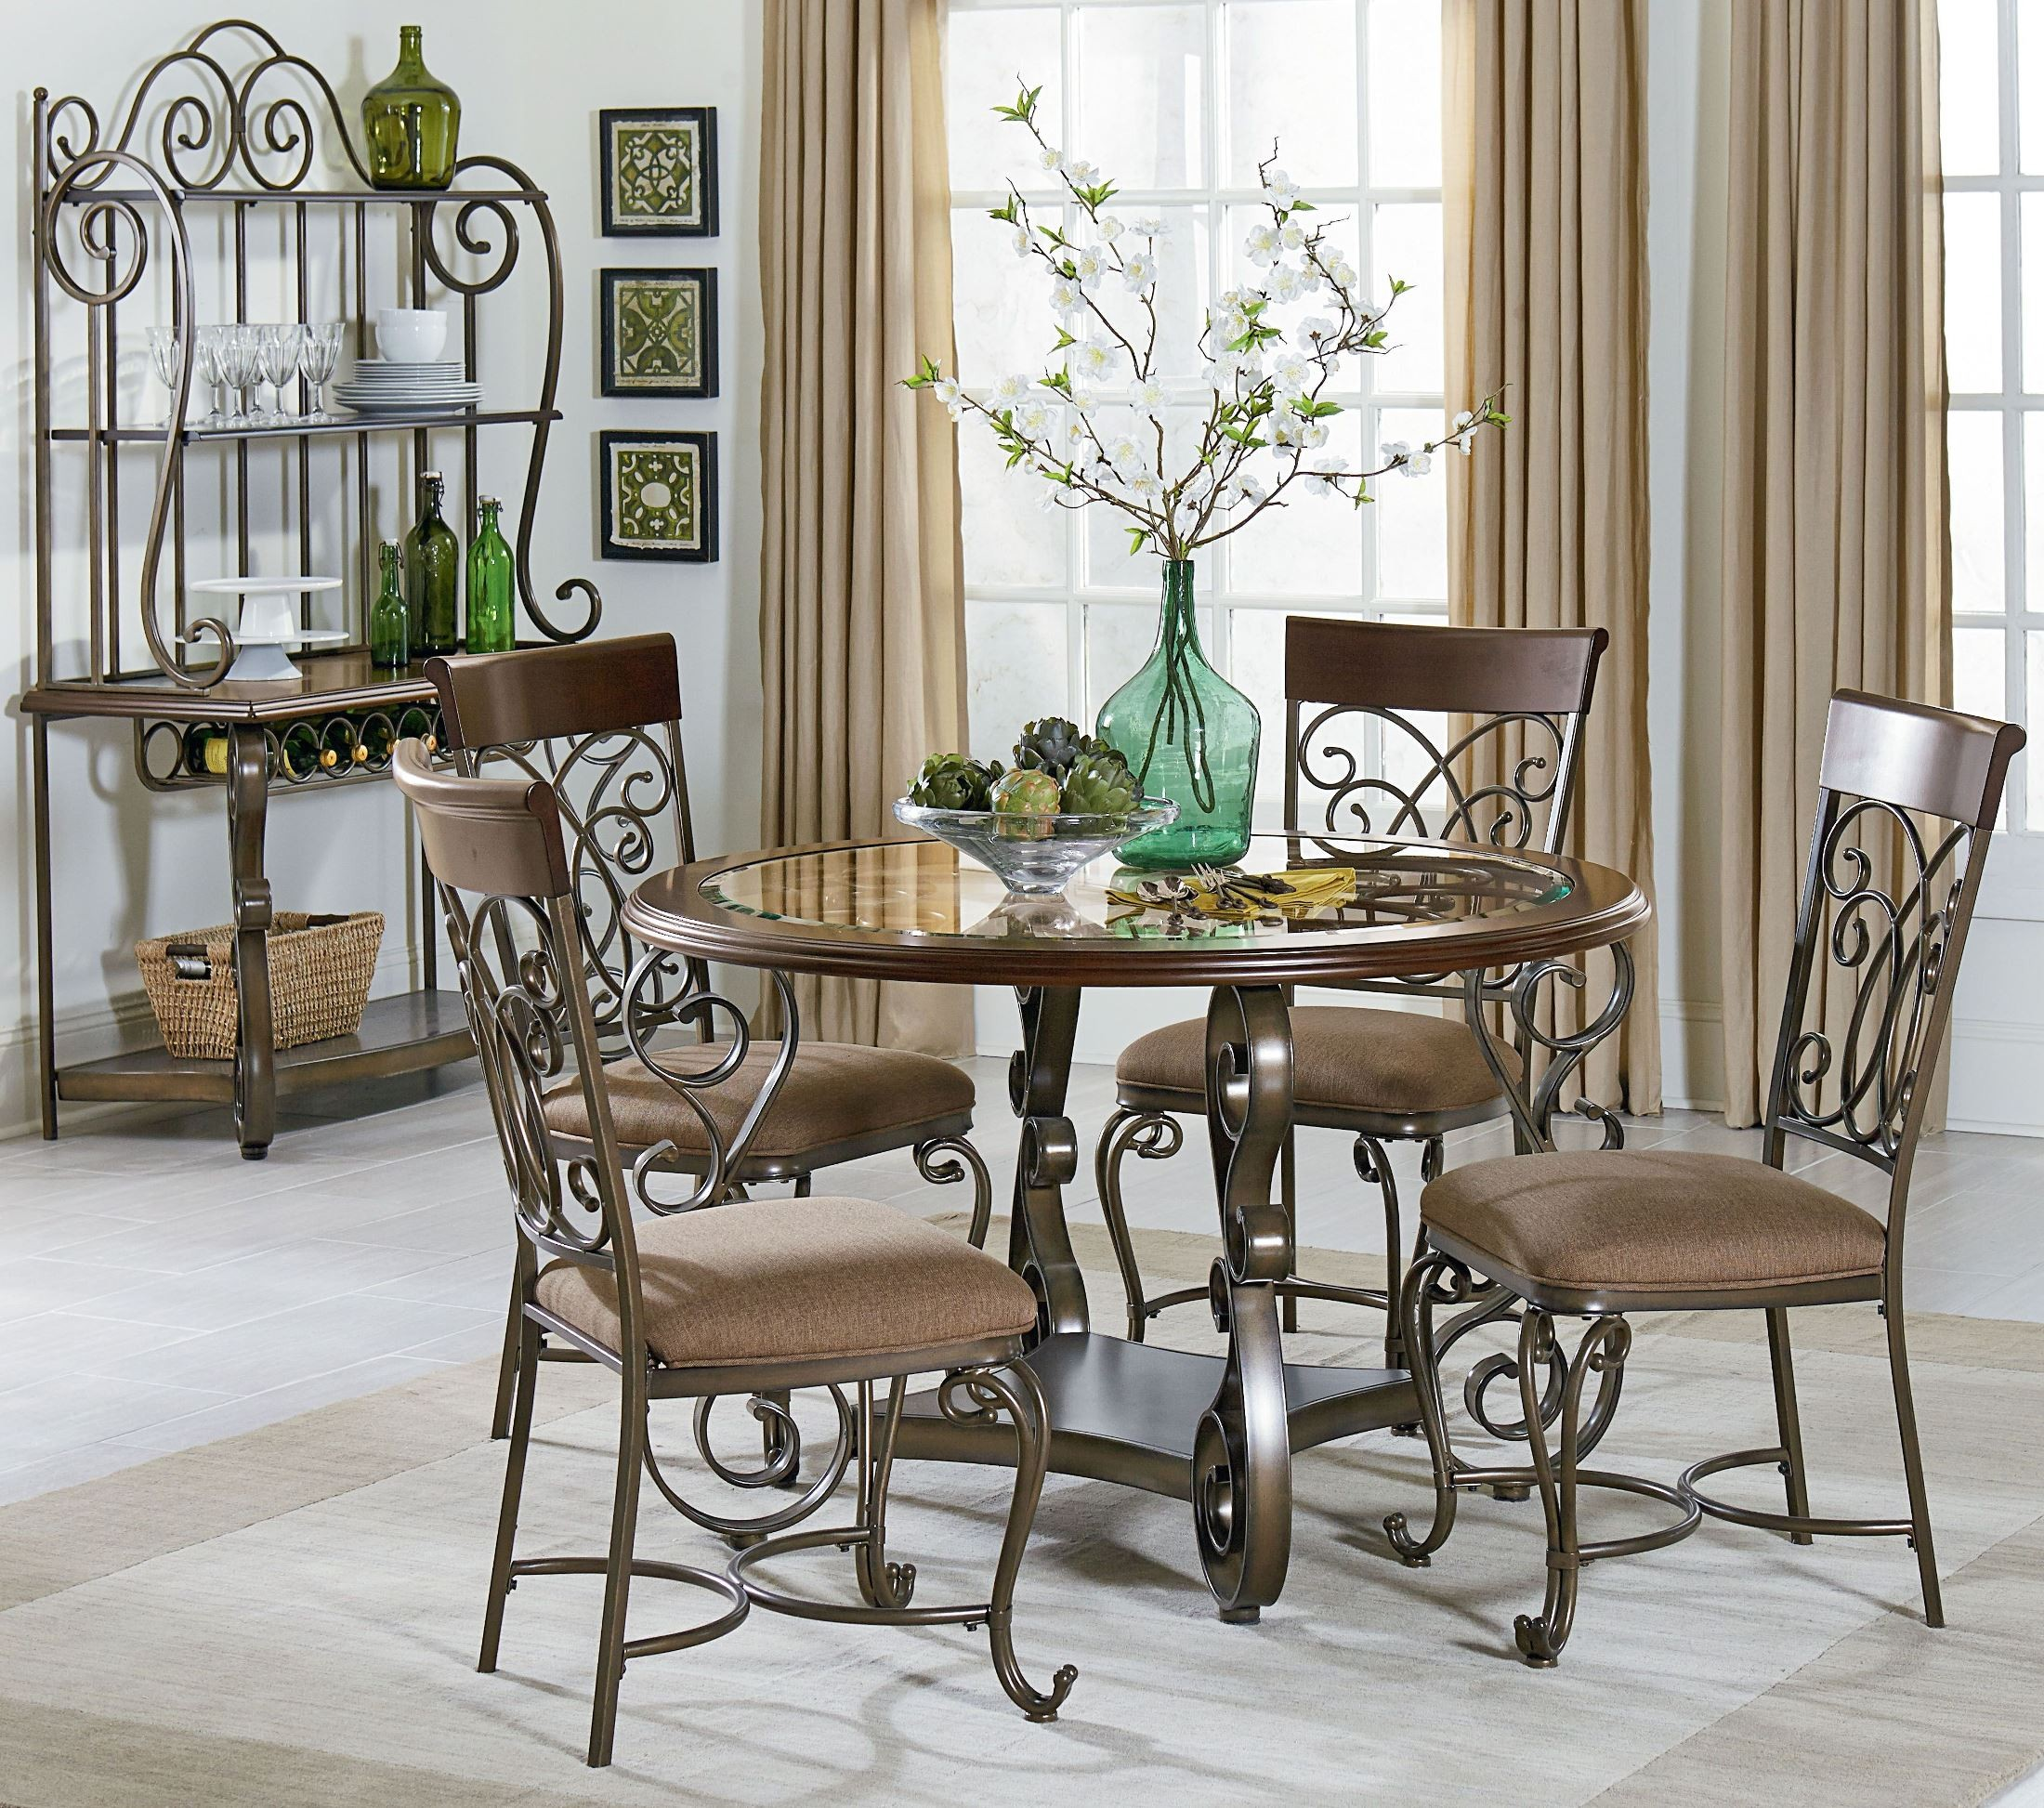 Cherry Dining Room Set: Bombay Dark Cherry Round Dining Room Set From Standard